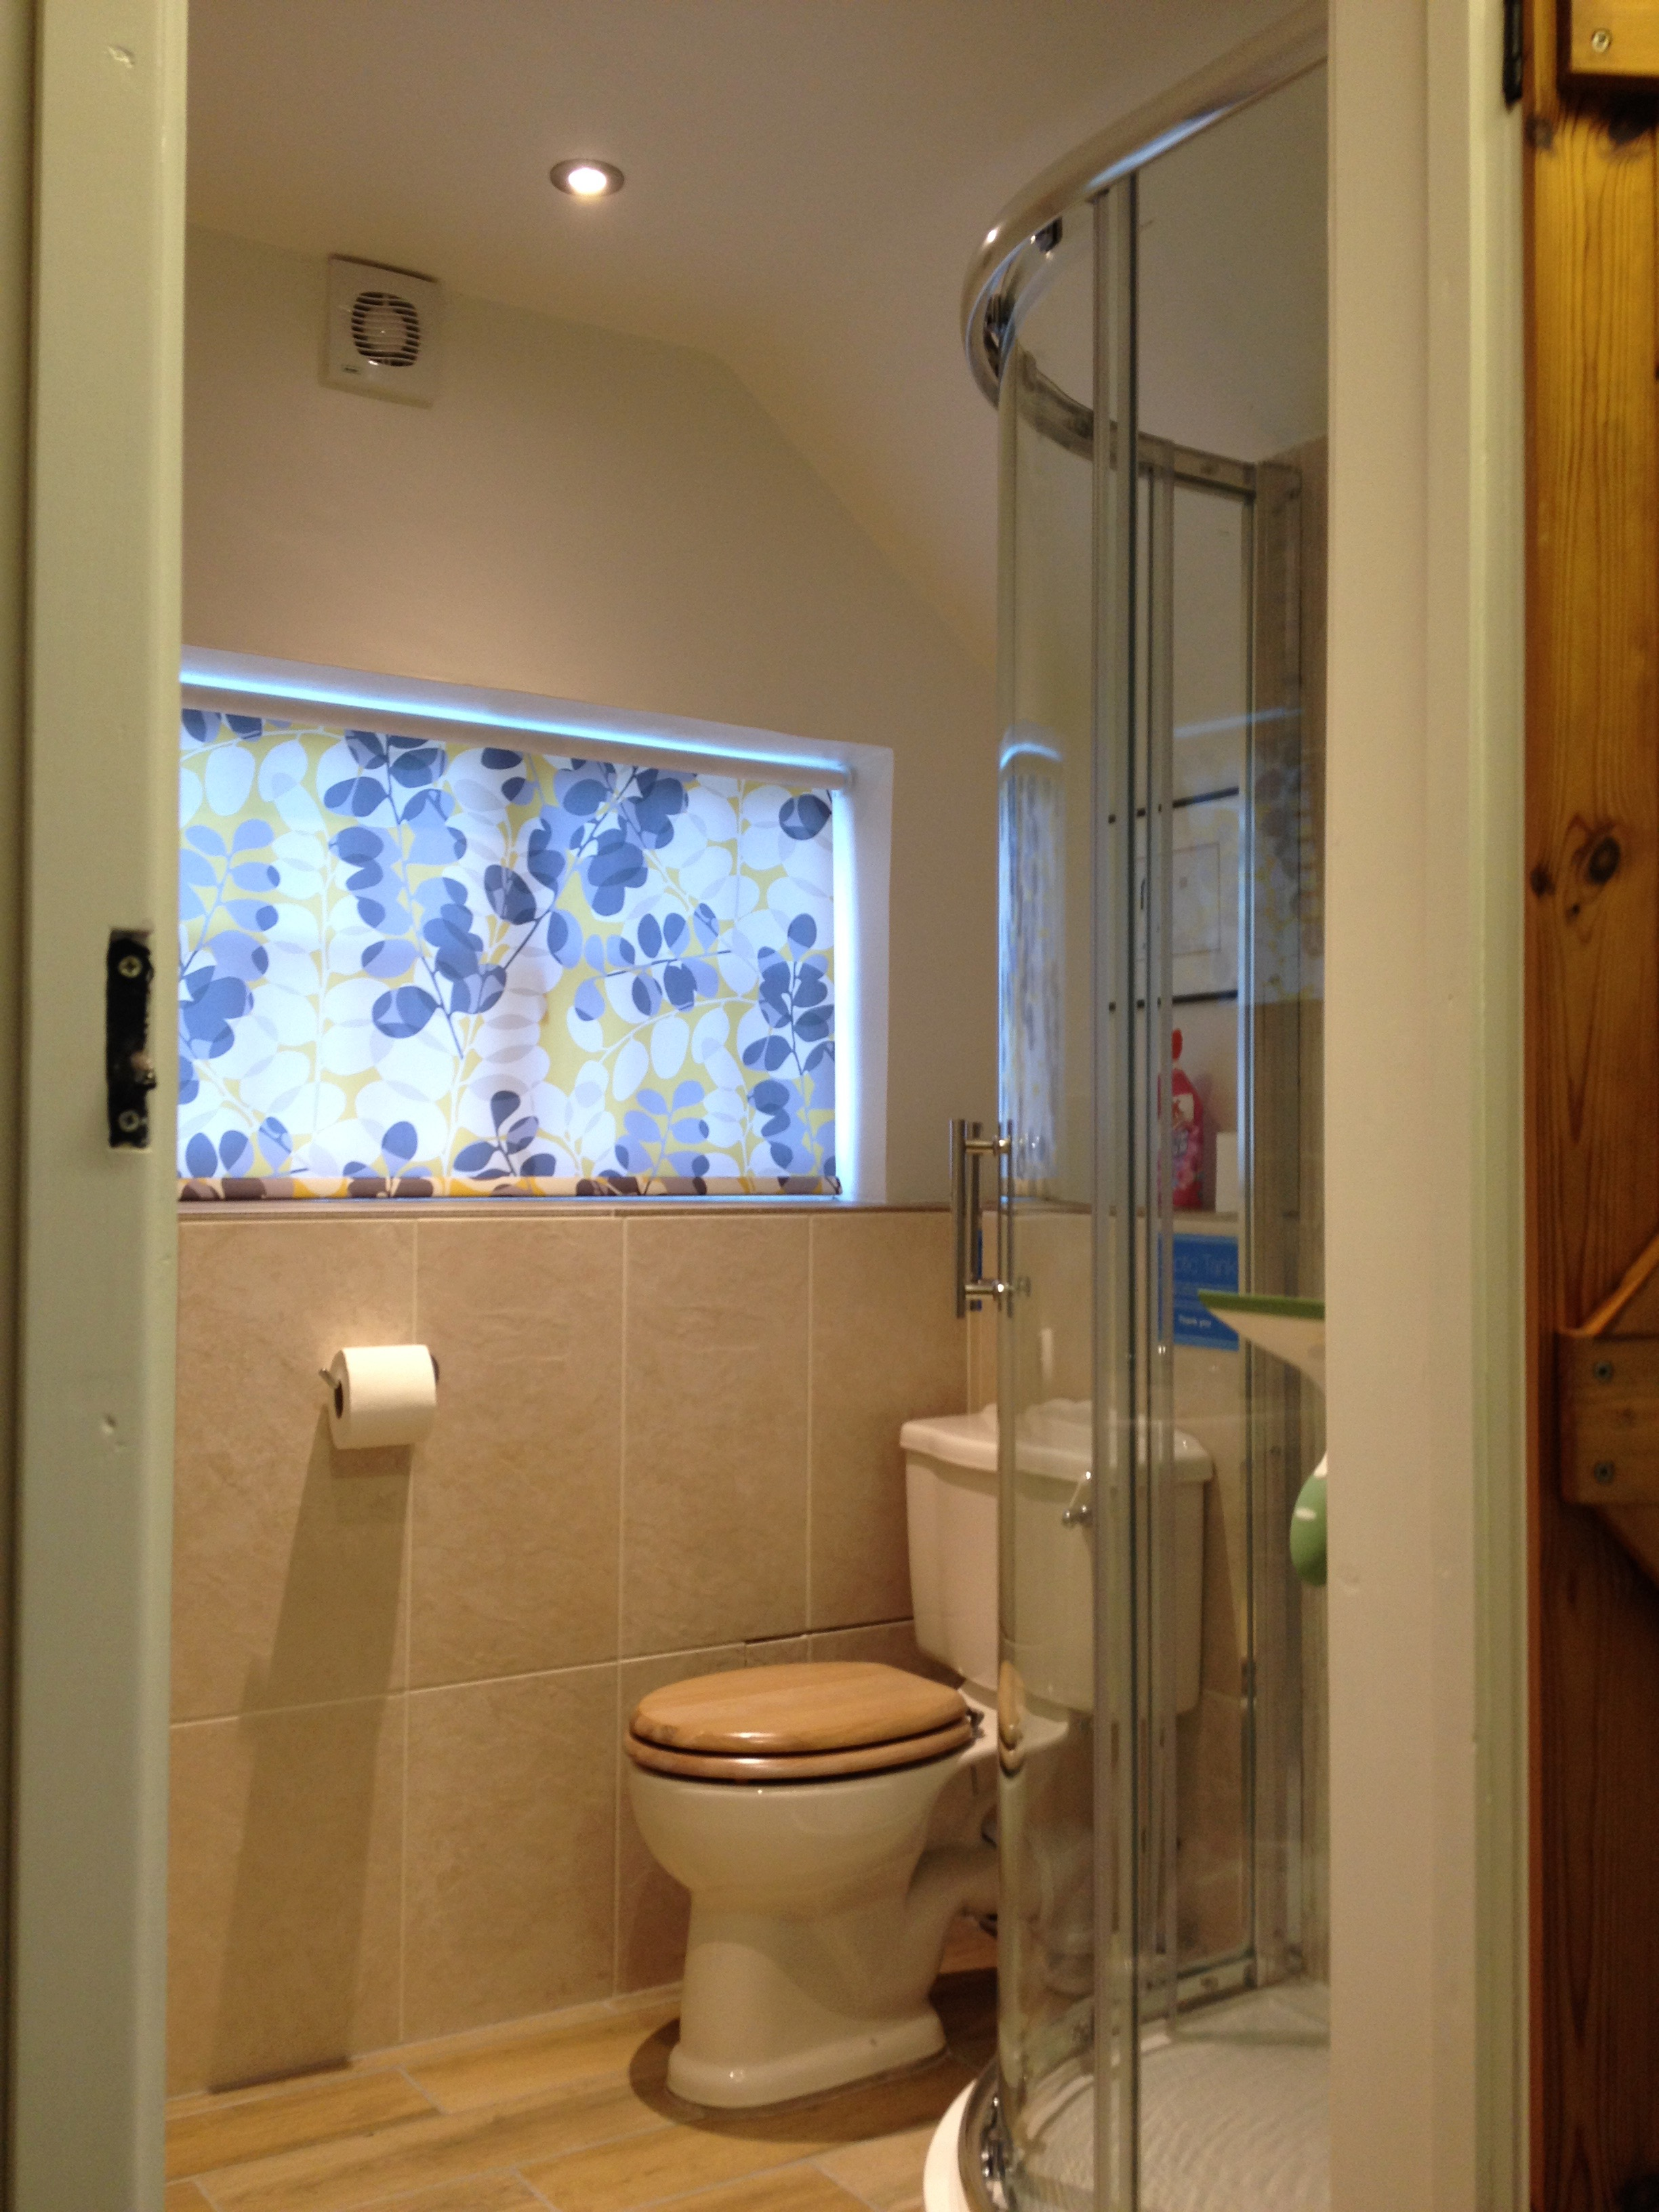 The downstairs shower-room (updated in 2017)